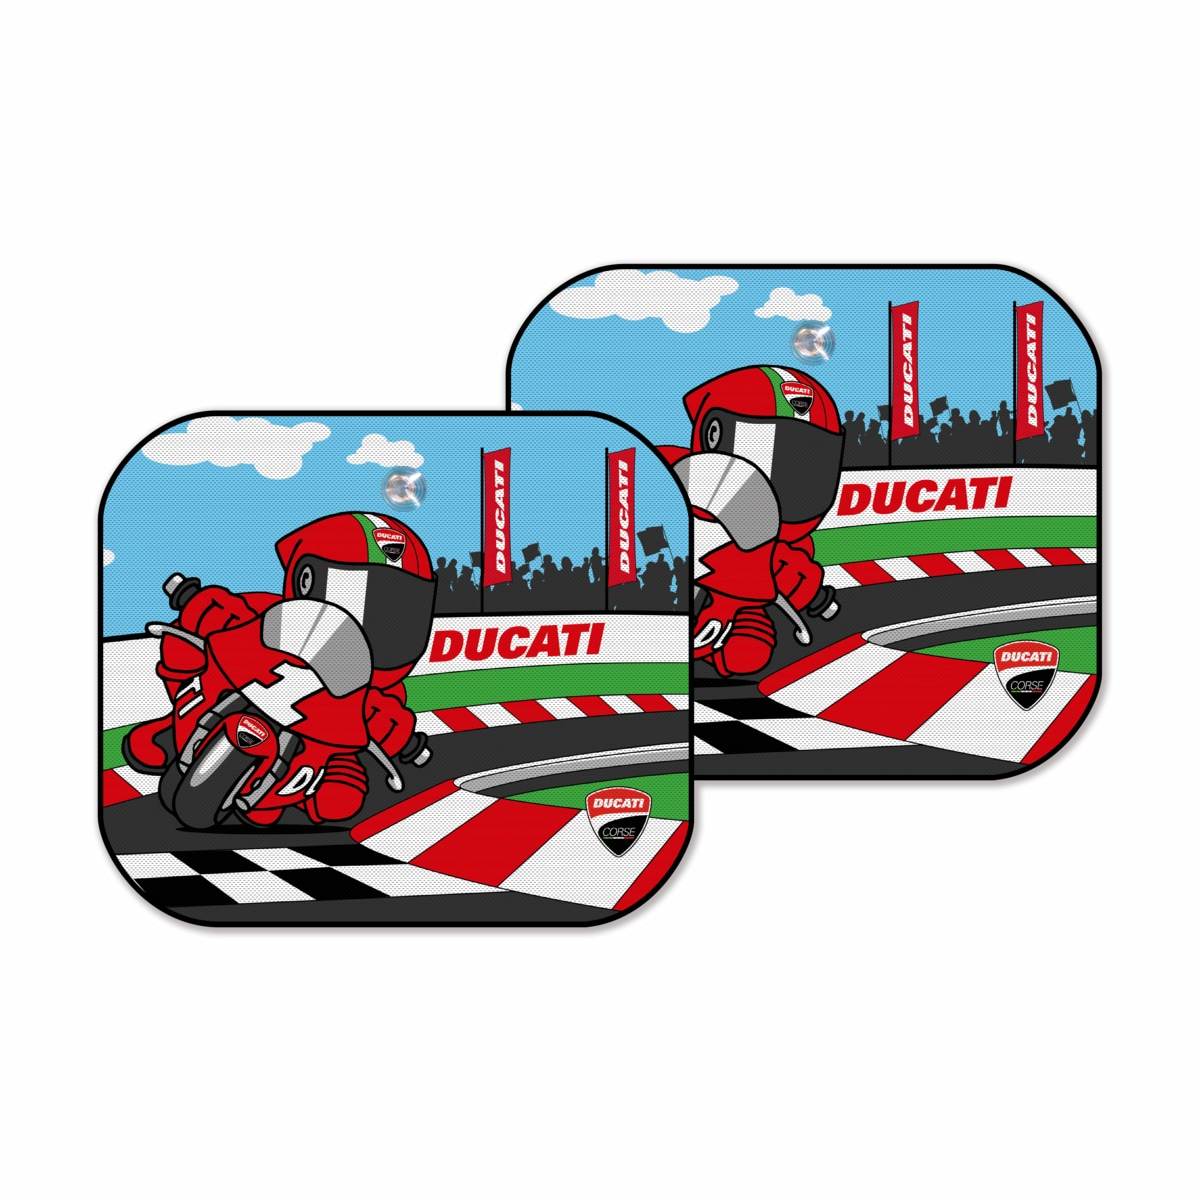 Cartoon Sun Shades Pair Accessories Apparel Ducati